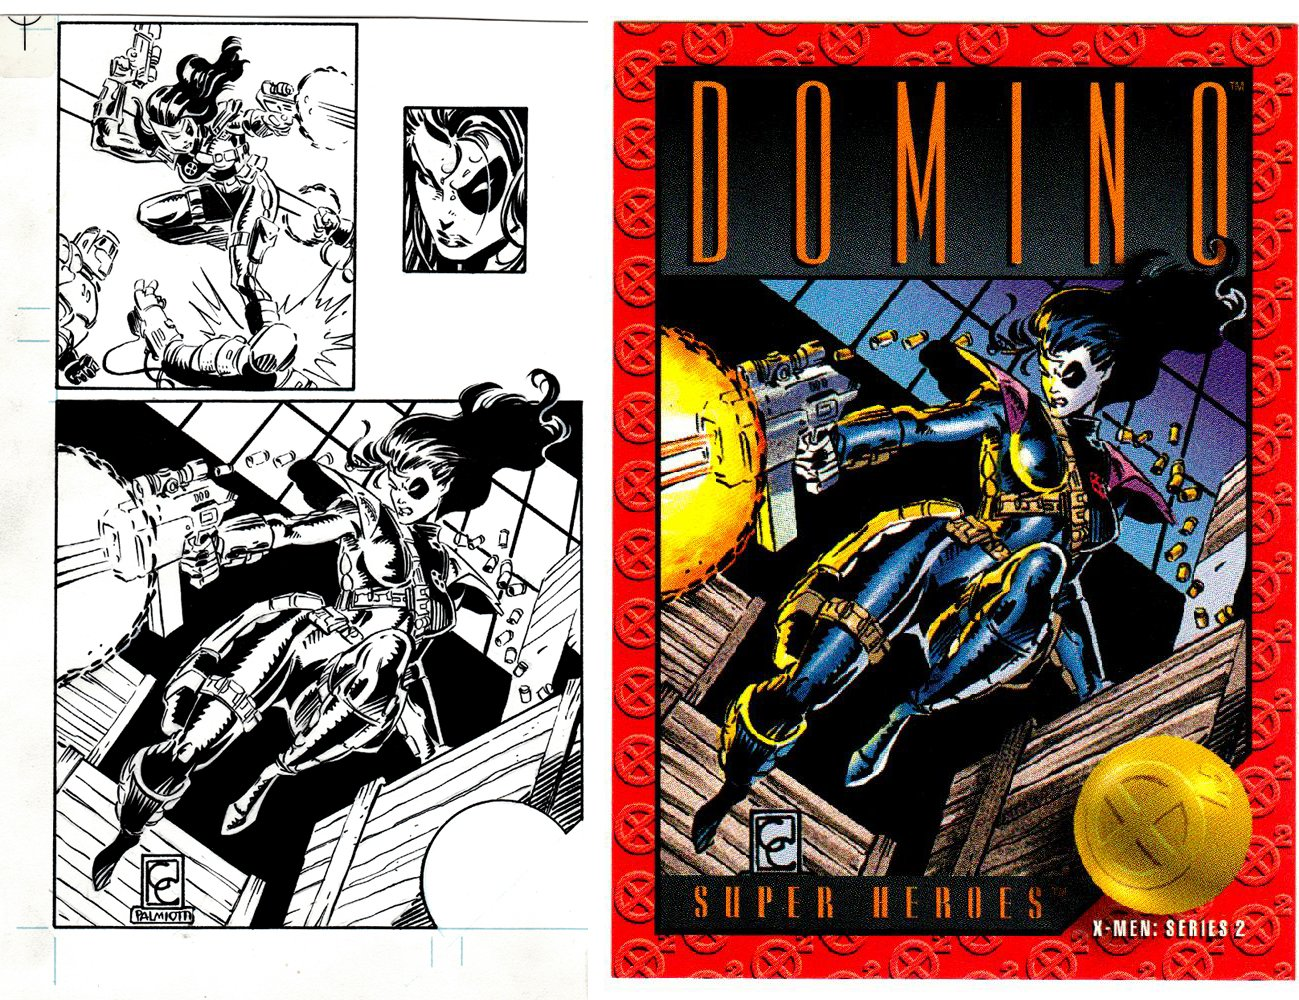 X-Men Series 2 Domino #11 Front & Back Art(SOLD LIVE ON 'DUELING DEALERS OF COMIC ART' EPISODE #32 PODCAST ON 8-18-2021(RE-WATCH THIS FUNNY ART SELLING SHOW HERE)